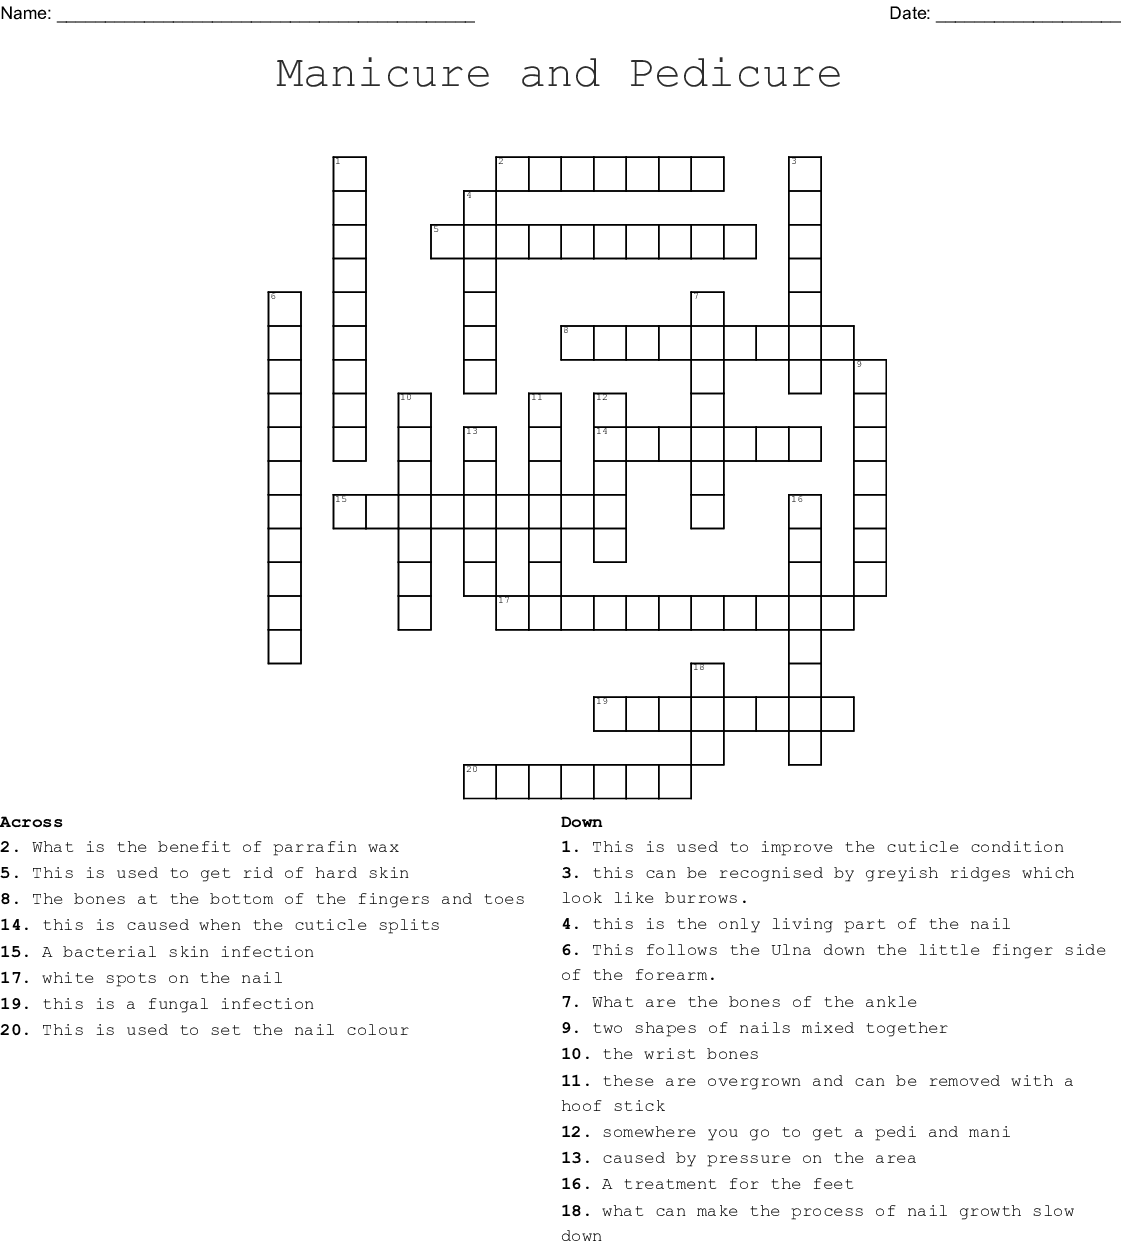 Manicure And Pedicure Crossword Puzzle